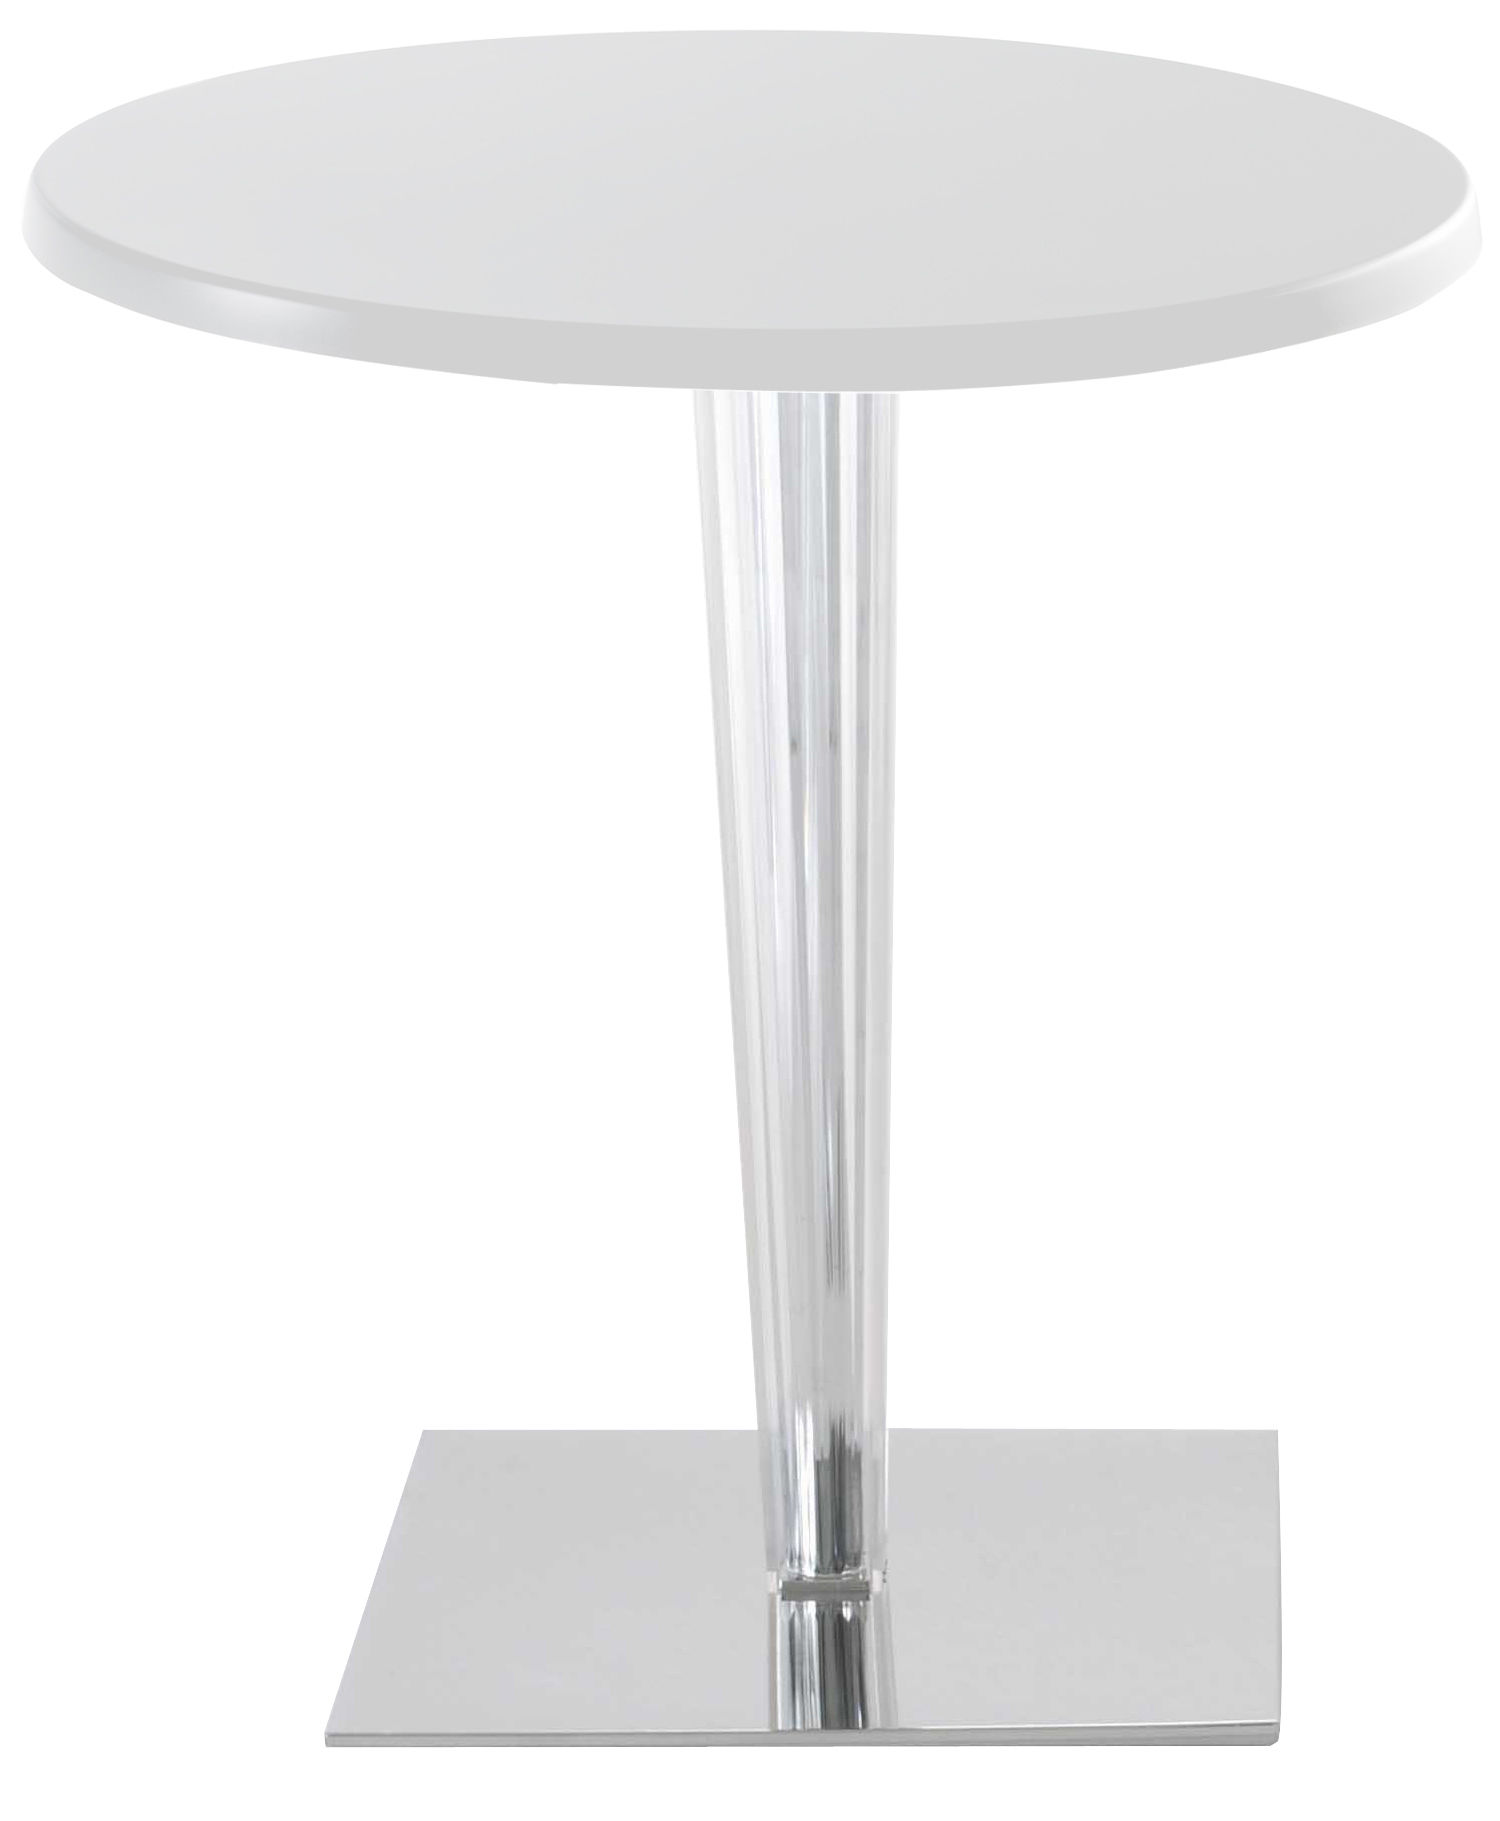 Mobilier - Tables - Table ronde Top Top / Laquée - Ø 70 cm - Kartell - Blanc/ pied carré - Aluminium, PMMA, Polyester laqué